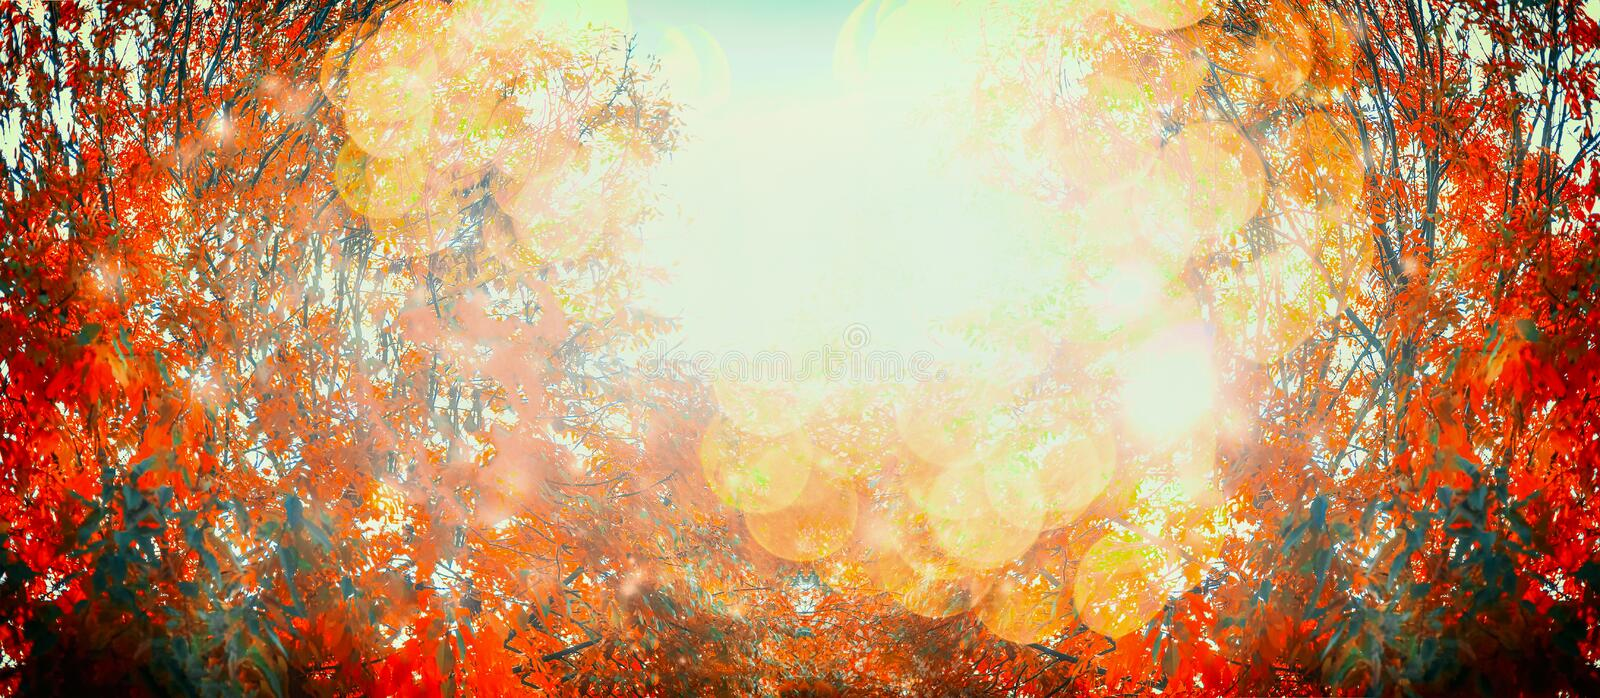 Beautiful autumn day with red fall foliage and sunlight, outdoor nature background, banner stock image